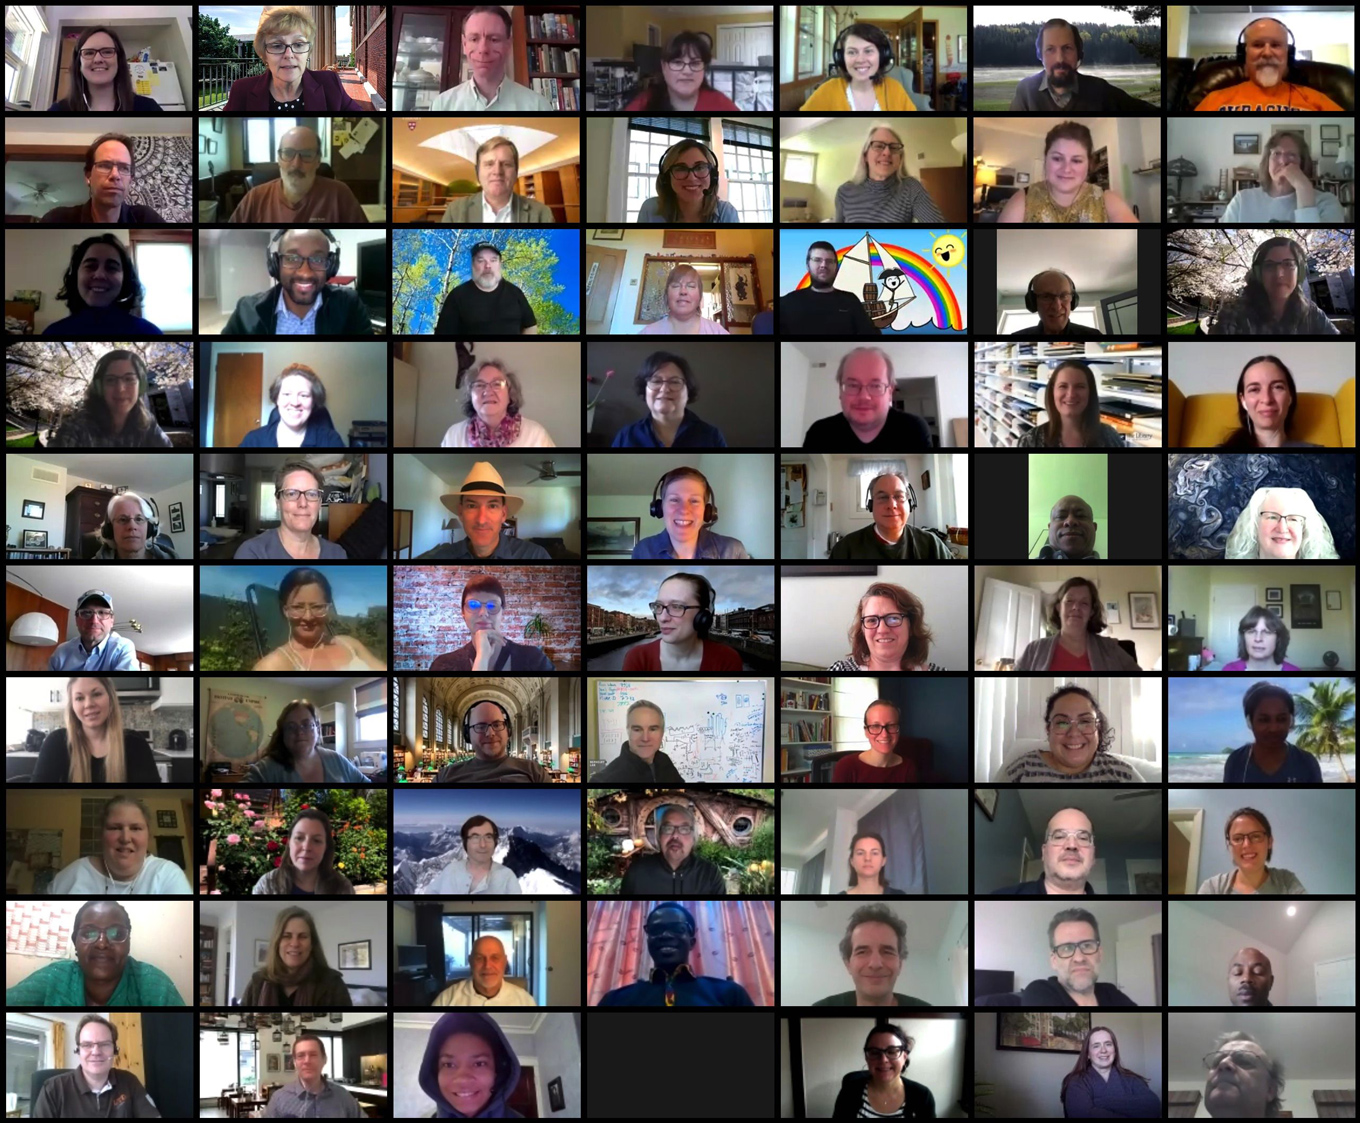 Group photo of many IASSIST members who participated the virtual General Assembly 2020 on Zoom.